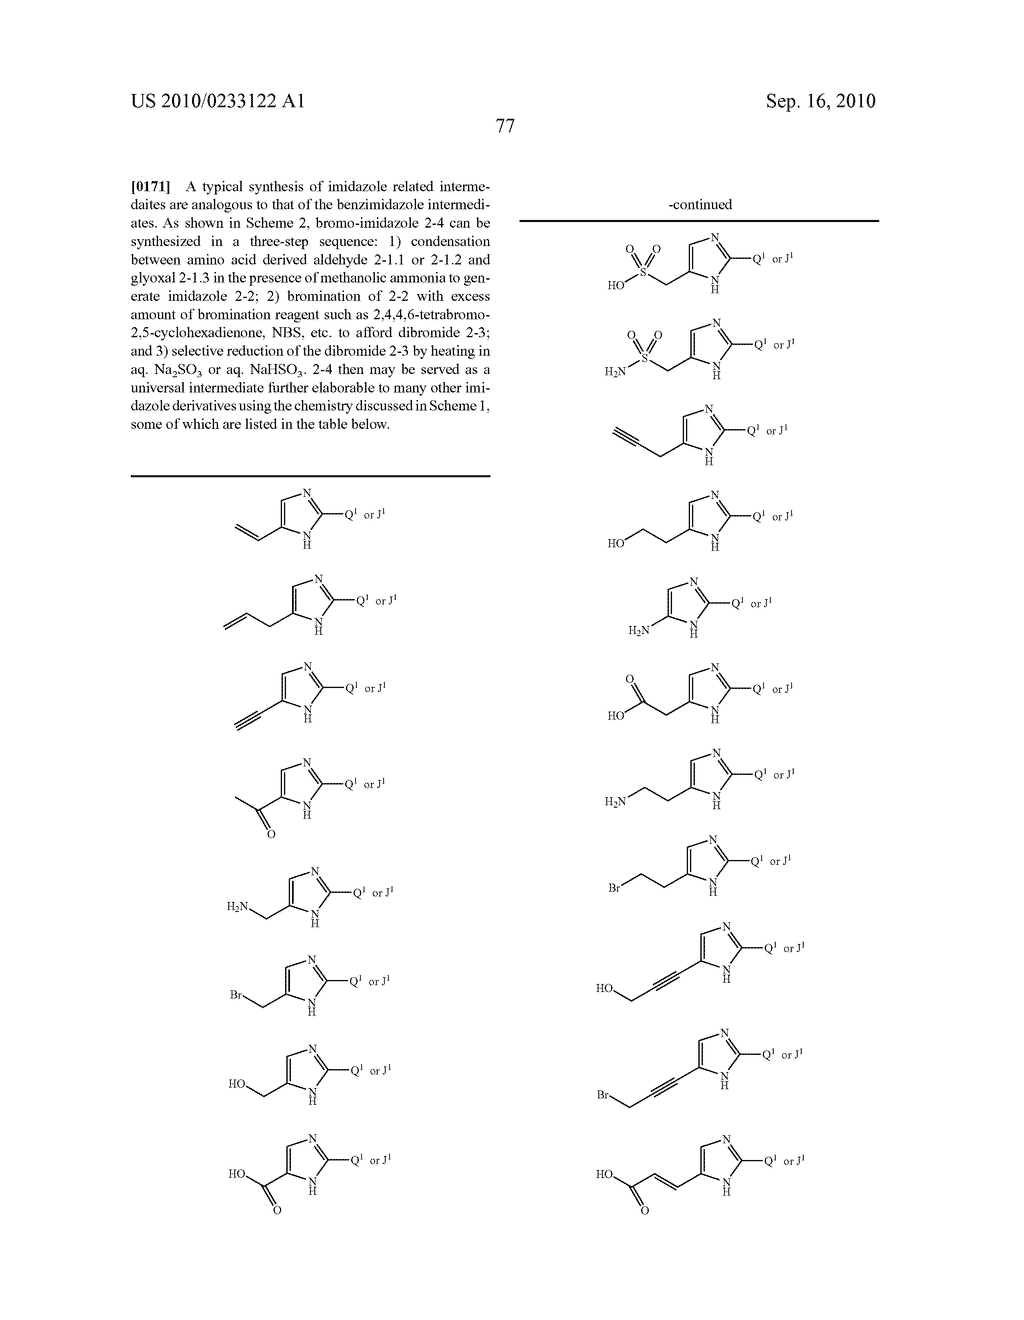 NOVEL BENZIMIDAZOLE DERIVATIVES - diagram, schematic, and image 78